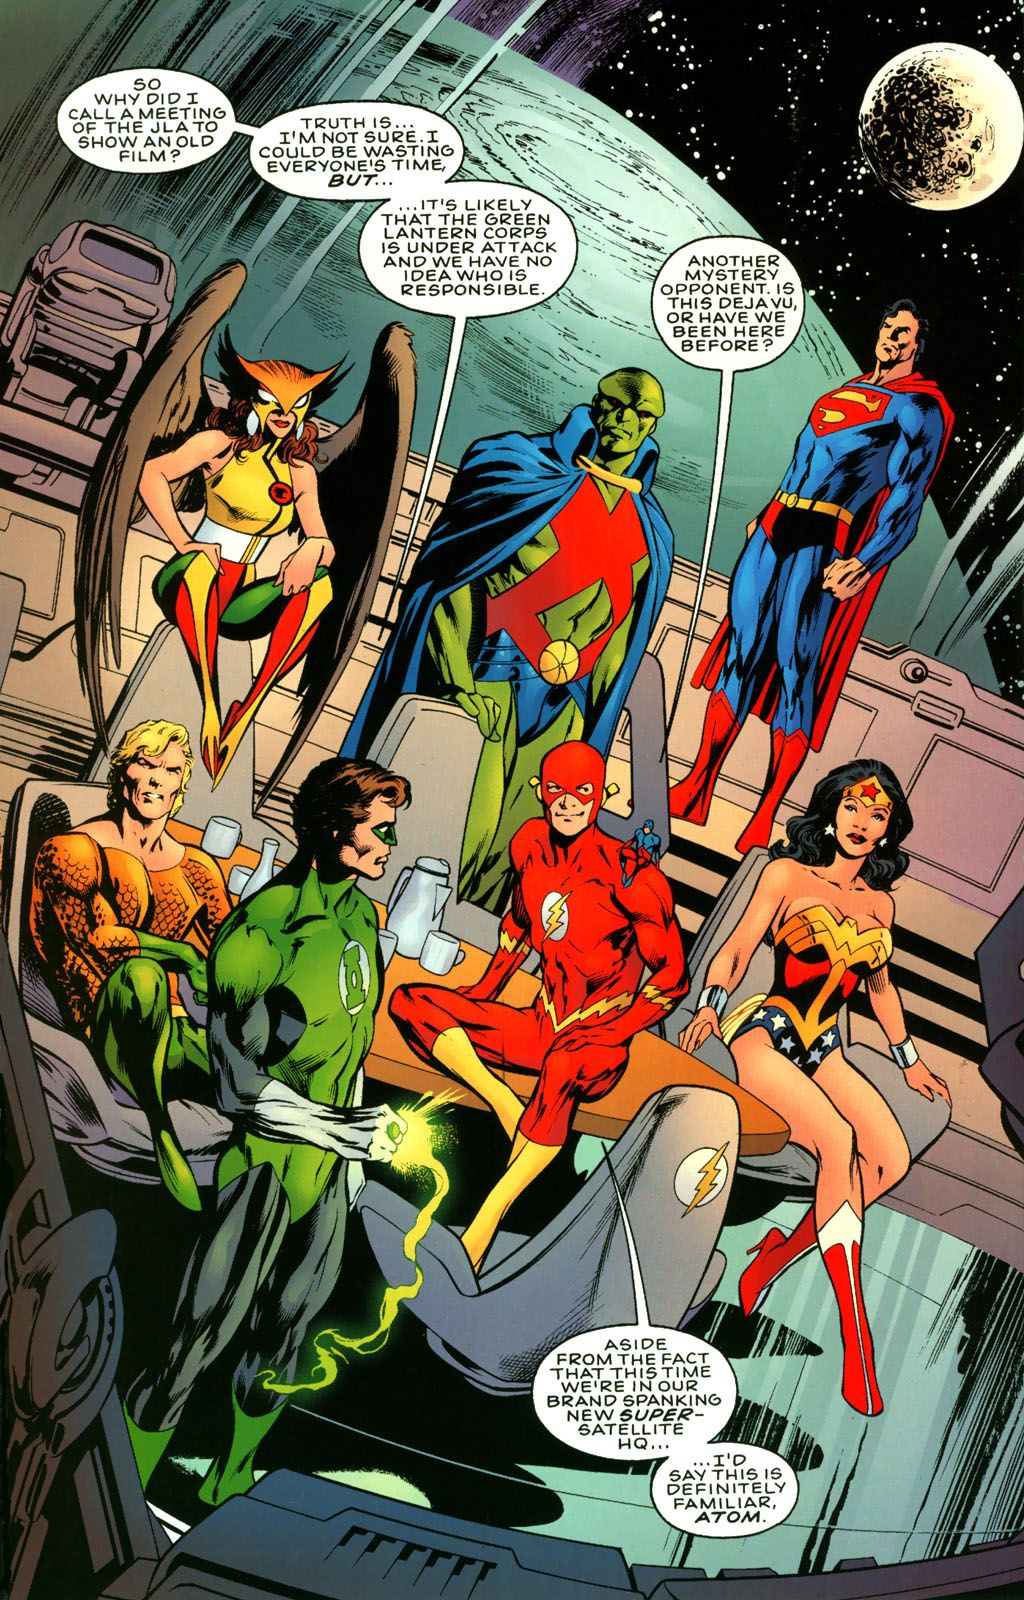 JLA : Another Nail Issue #1 - Read JLA : Another Nail Issue #1 comic ...